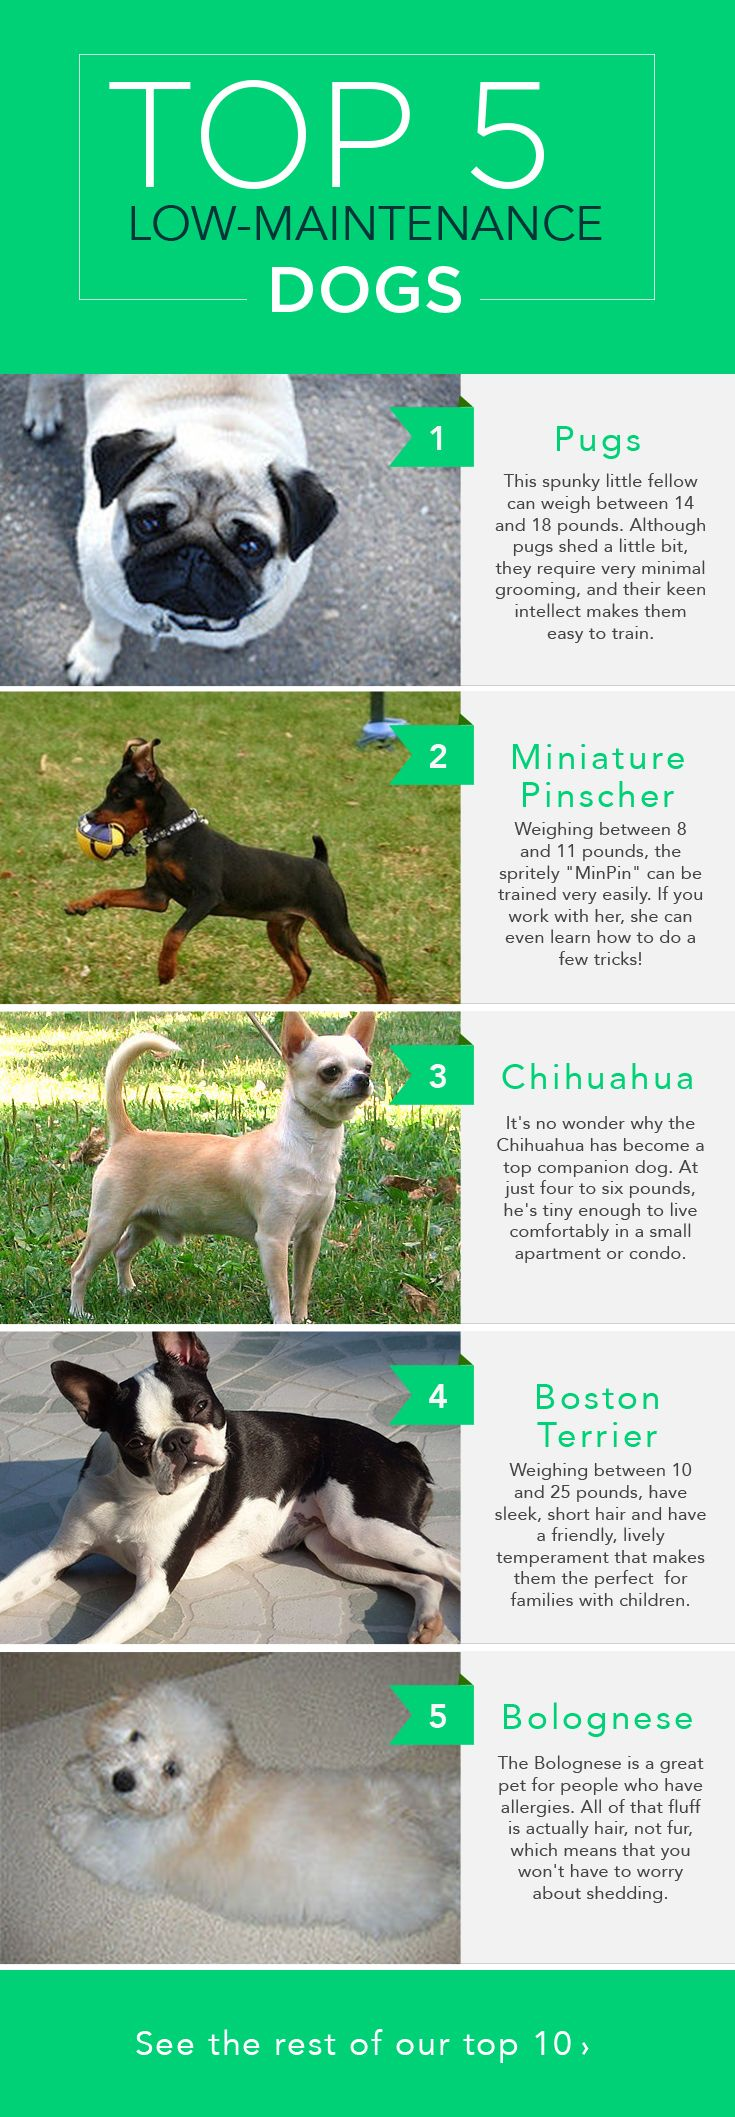 The Top 10 LowMaintenance Dogs (With images) Low